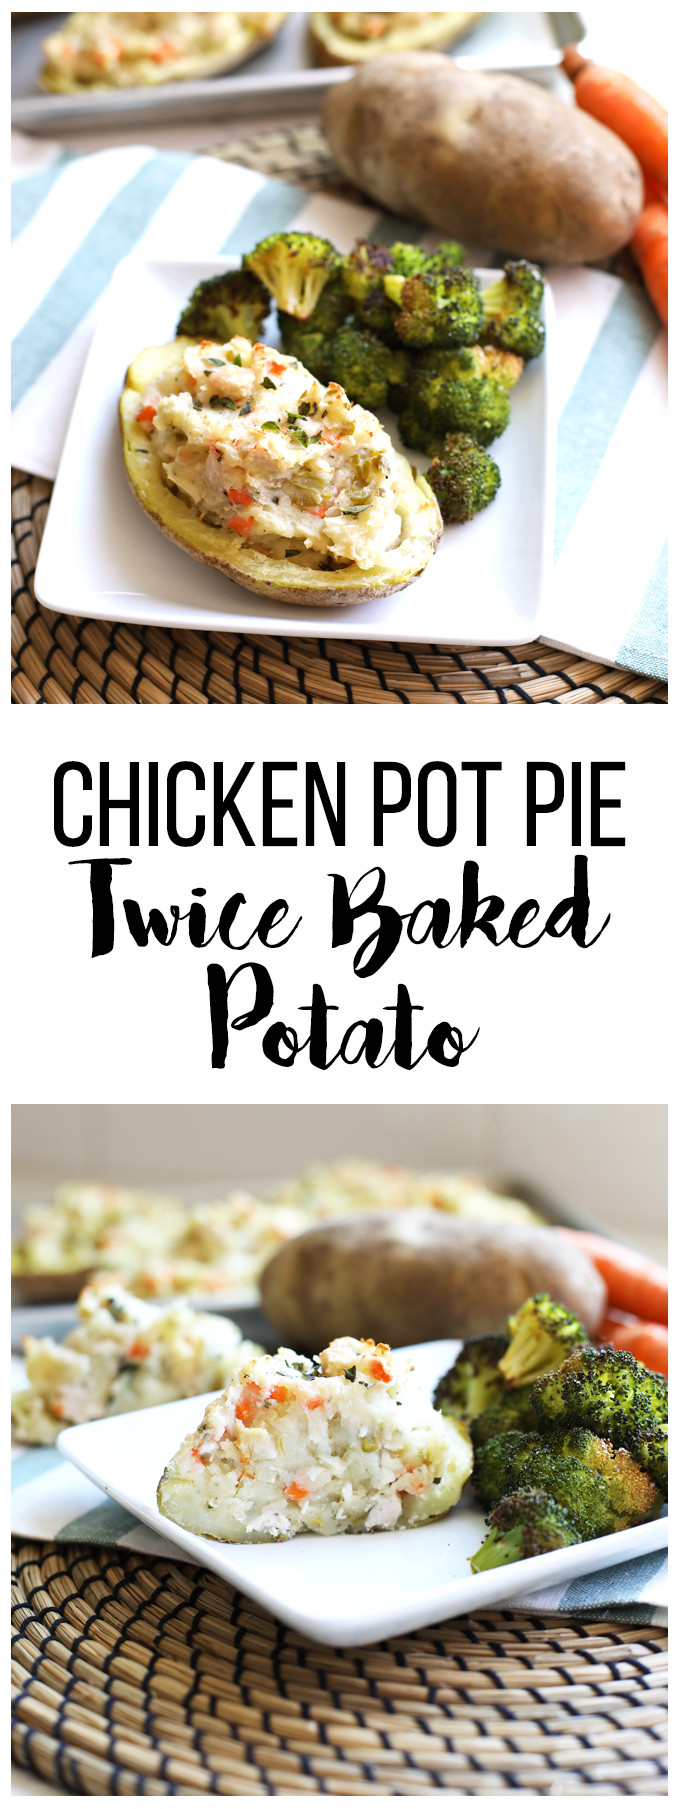 Chicken Pot Pie With Potato  Chicken Pot Pie Twice Baked Potatoes – Little Bits of…